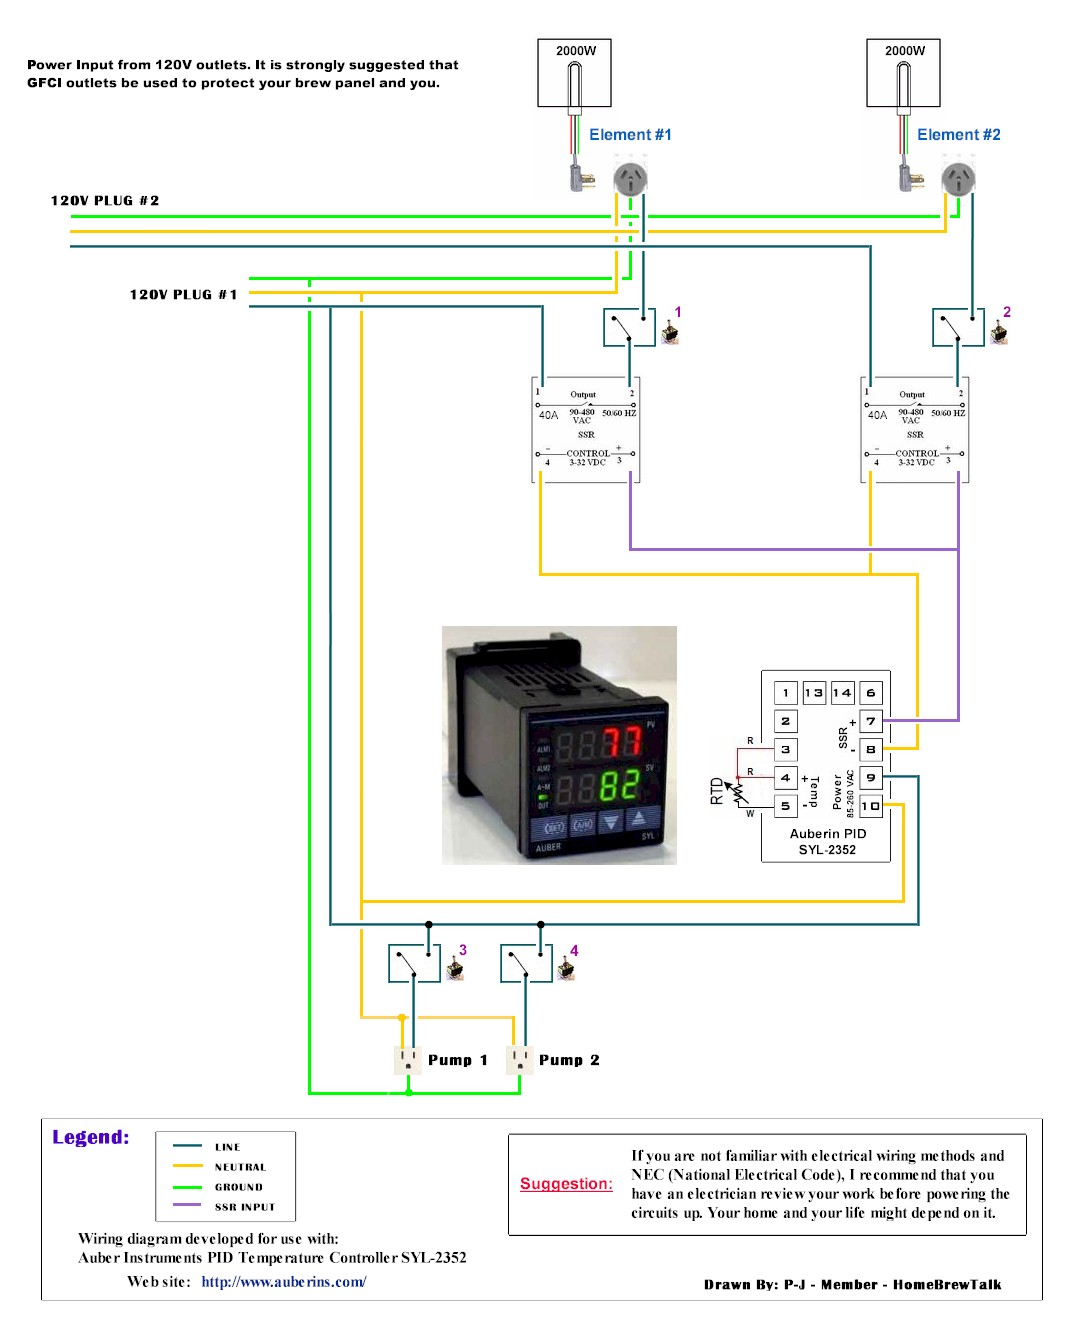 Braumeister Nextgen Build Page 73 Aussie Home Brewer Wire 240v Electric Brew Pot Controller Forums Auberin Wiring1 A4 Simple 1